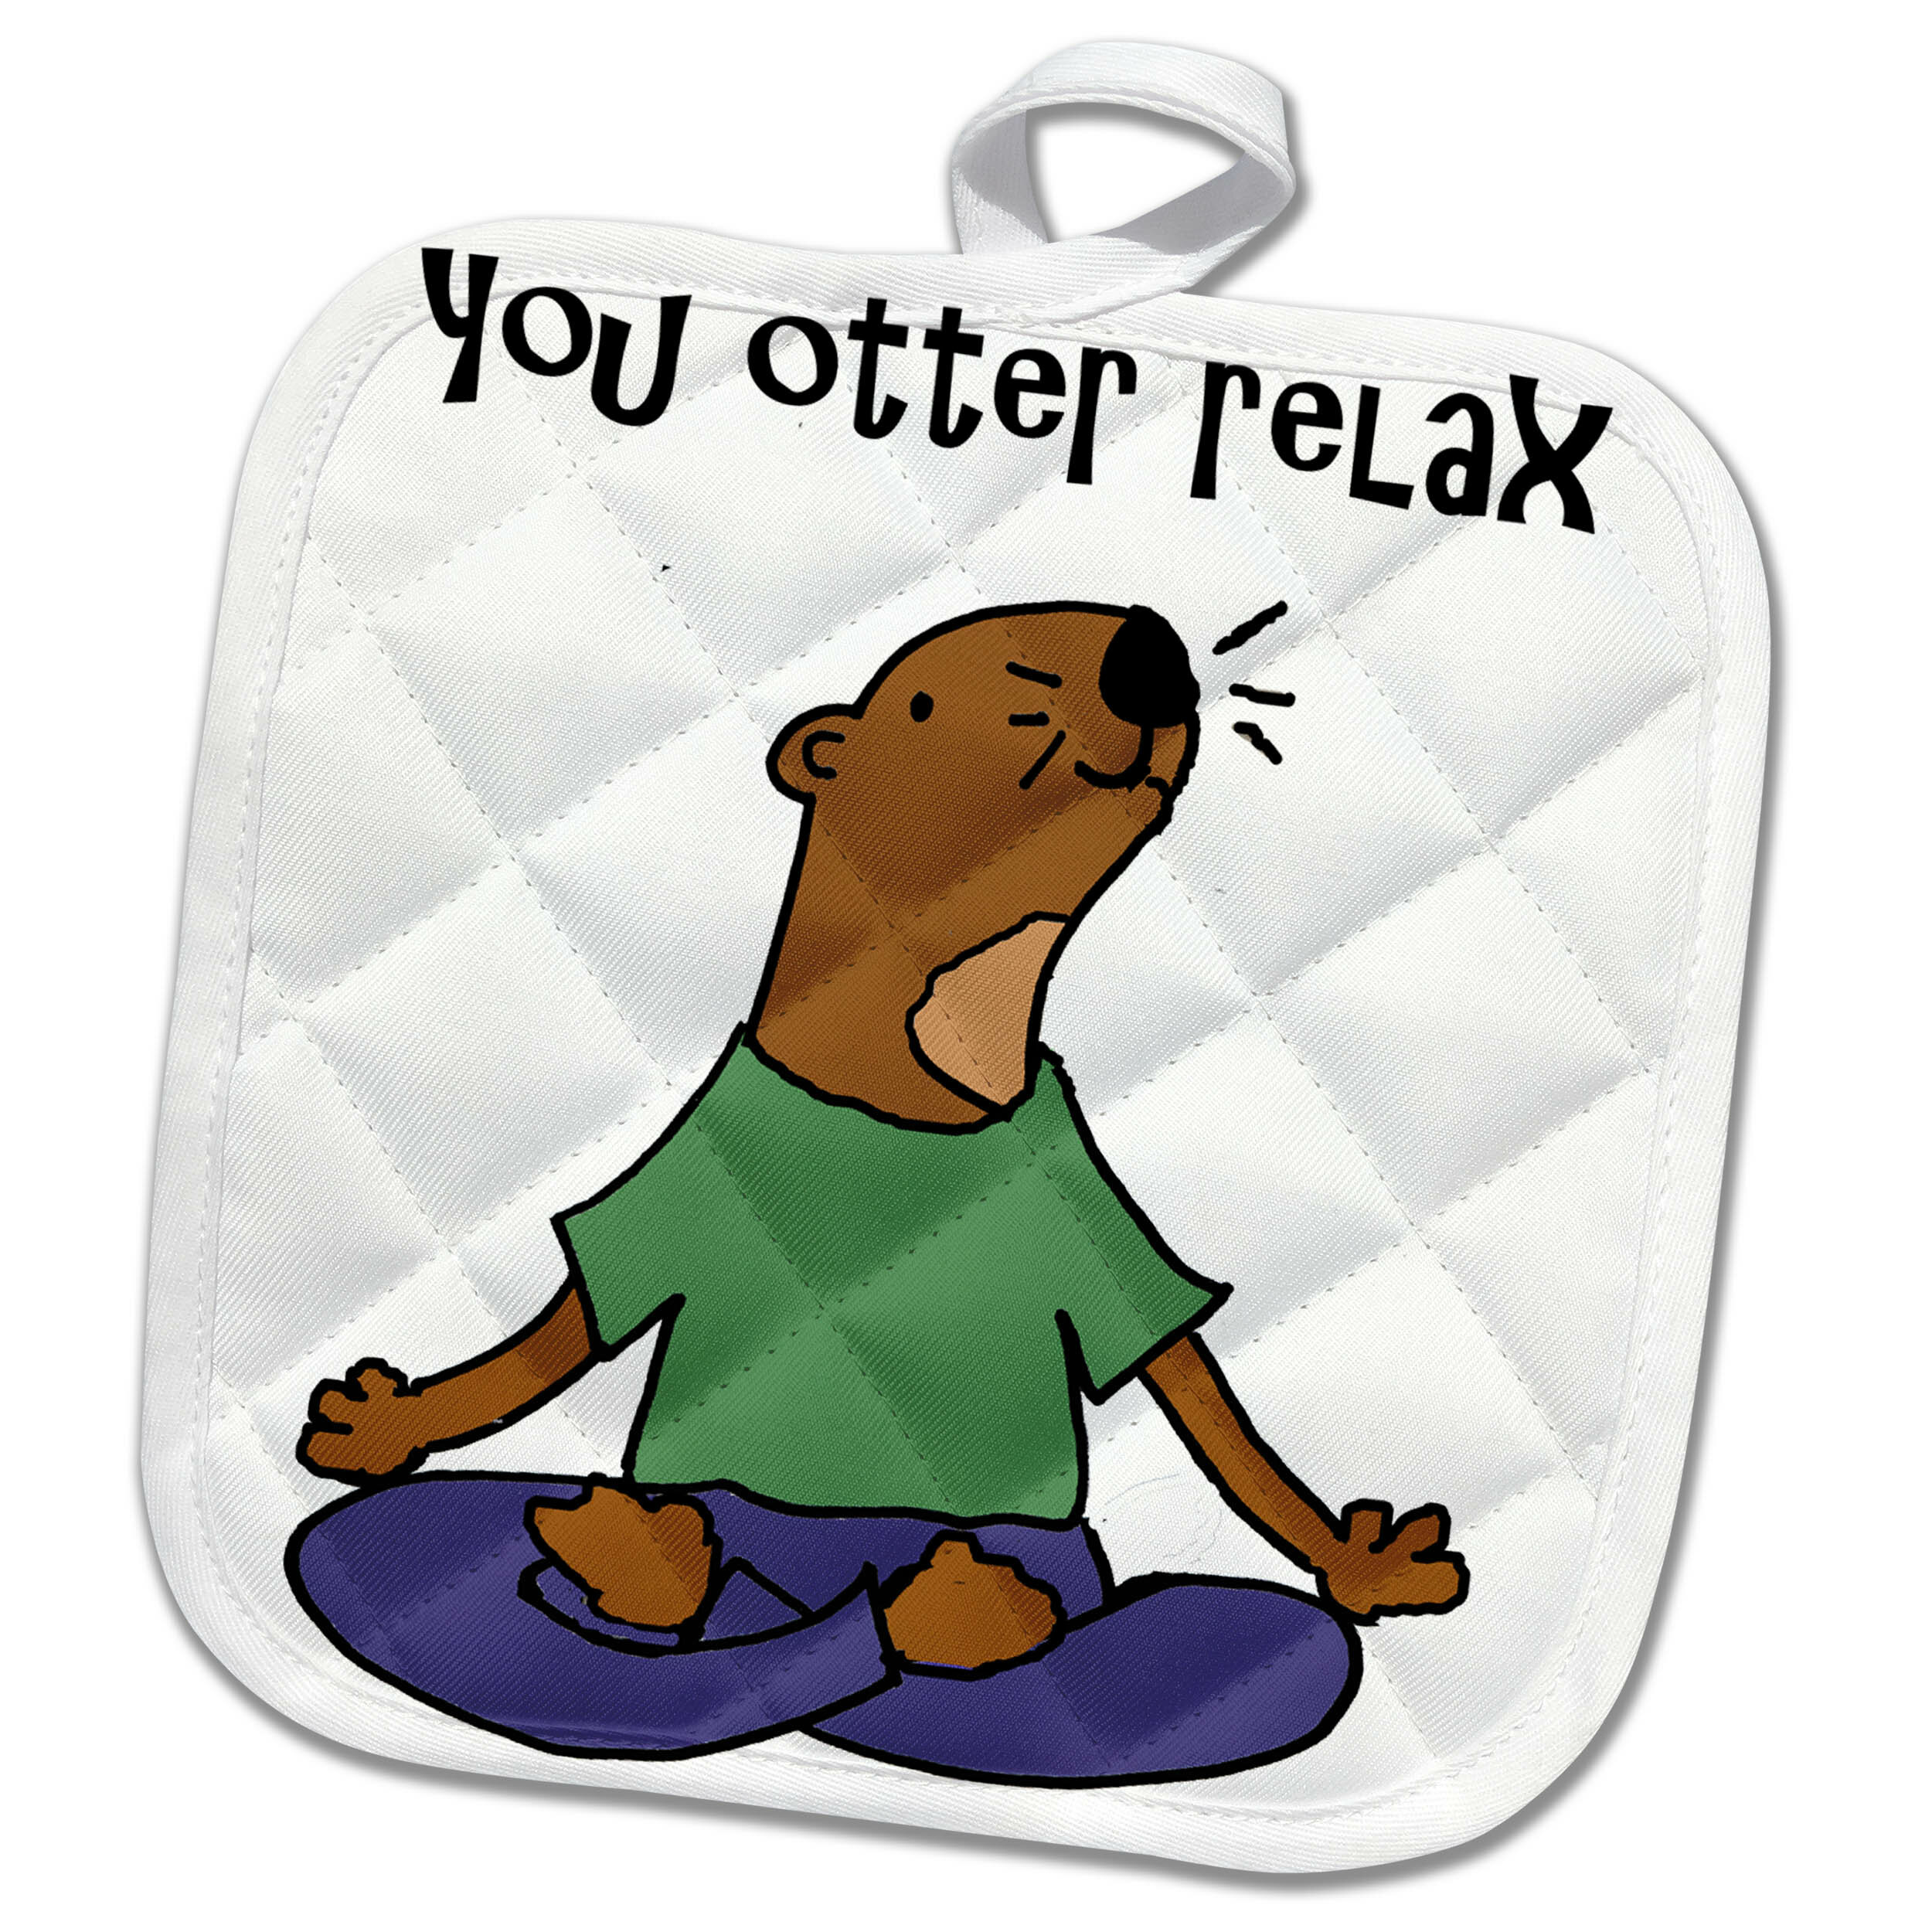 3drose Funny Cute Sea Otter Yoga Cartoon You Otter Relax Pun Potholder Wayfair